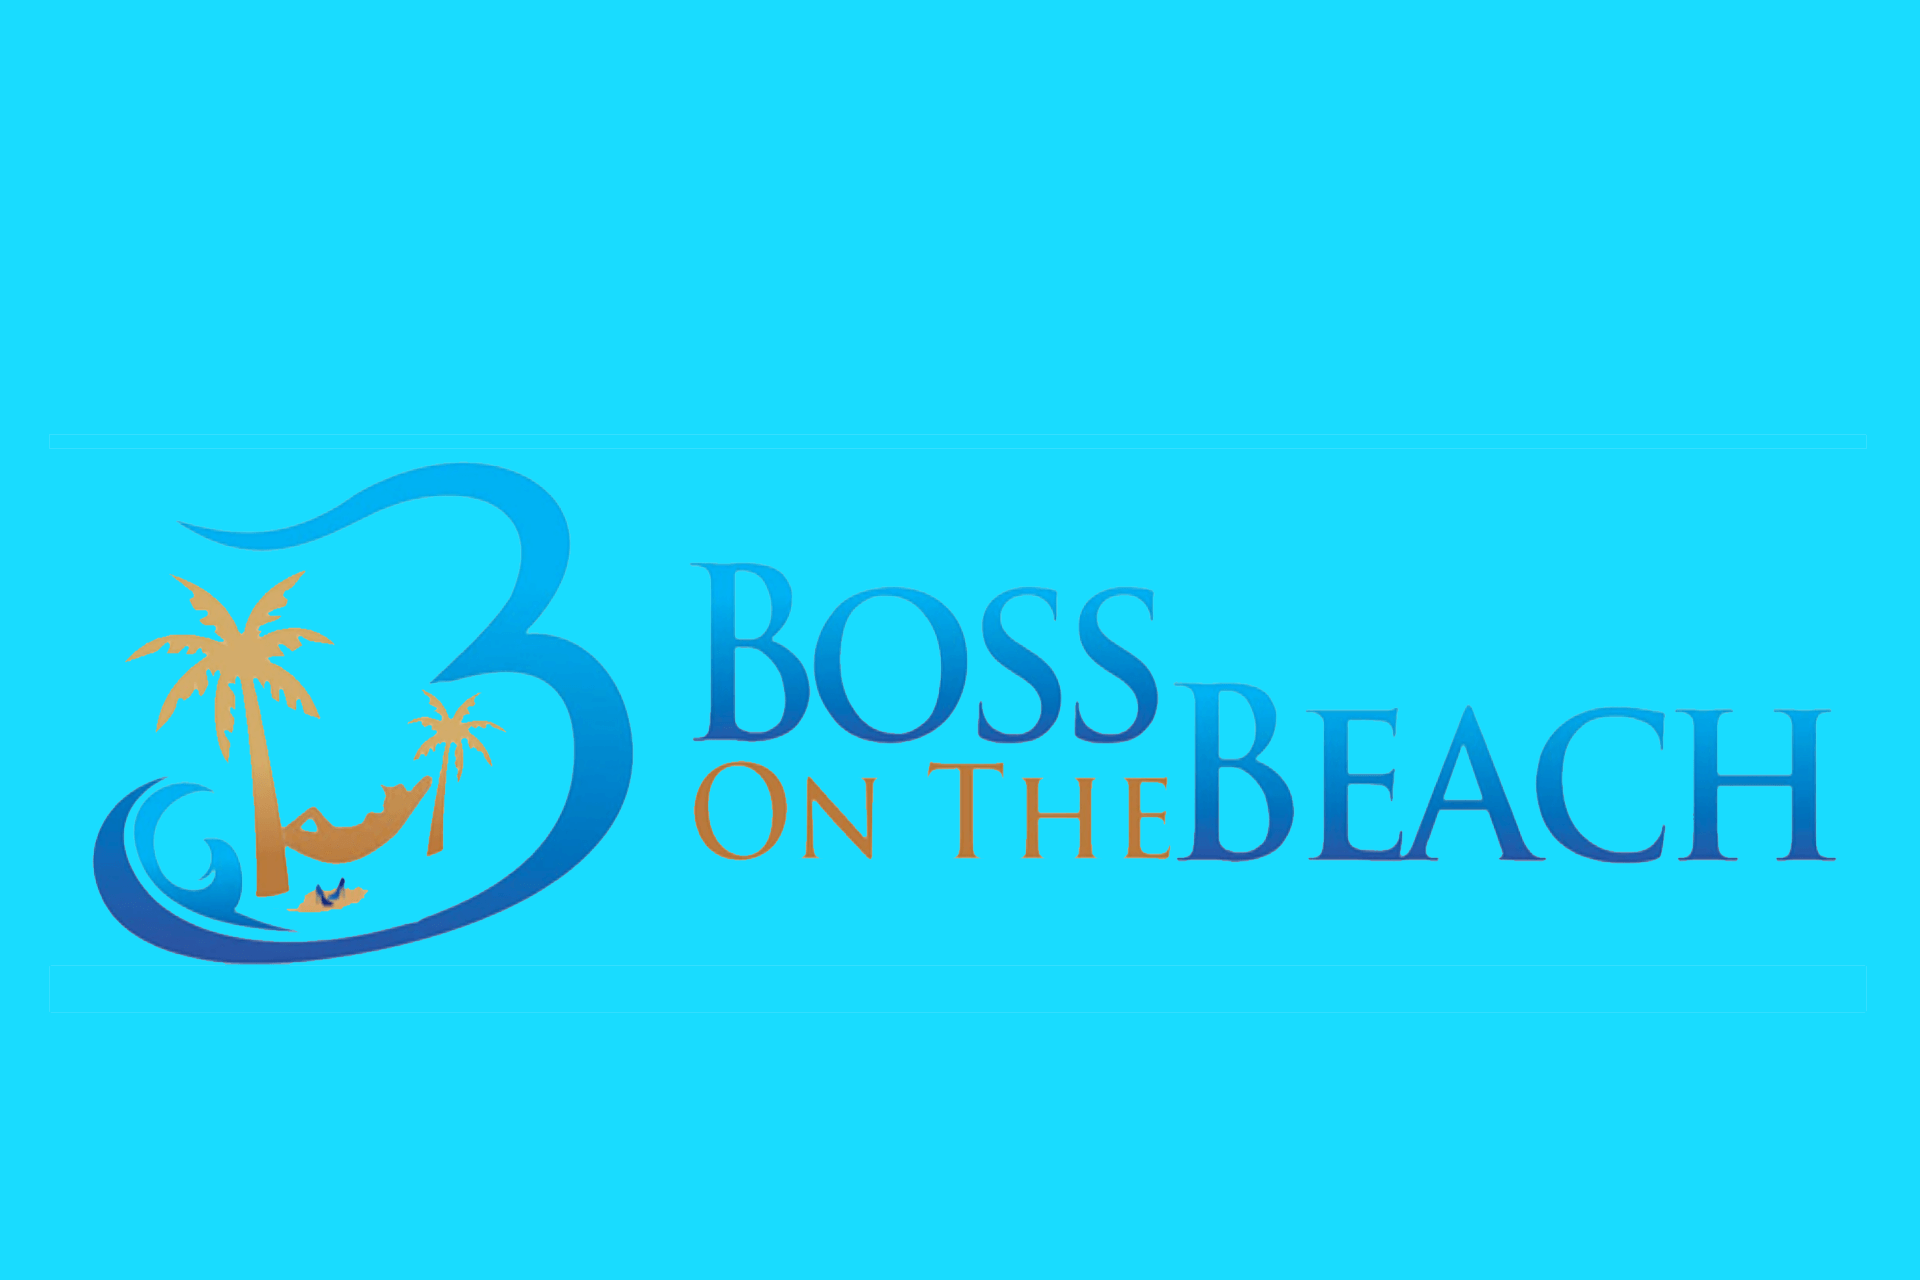 Boss on the beach FHD